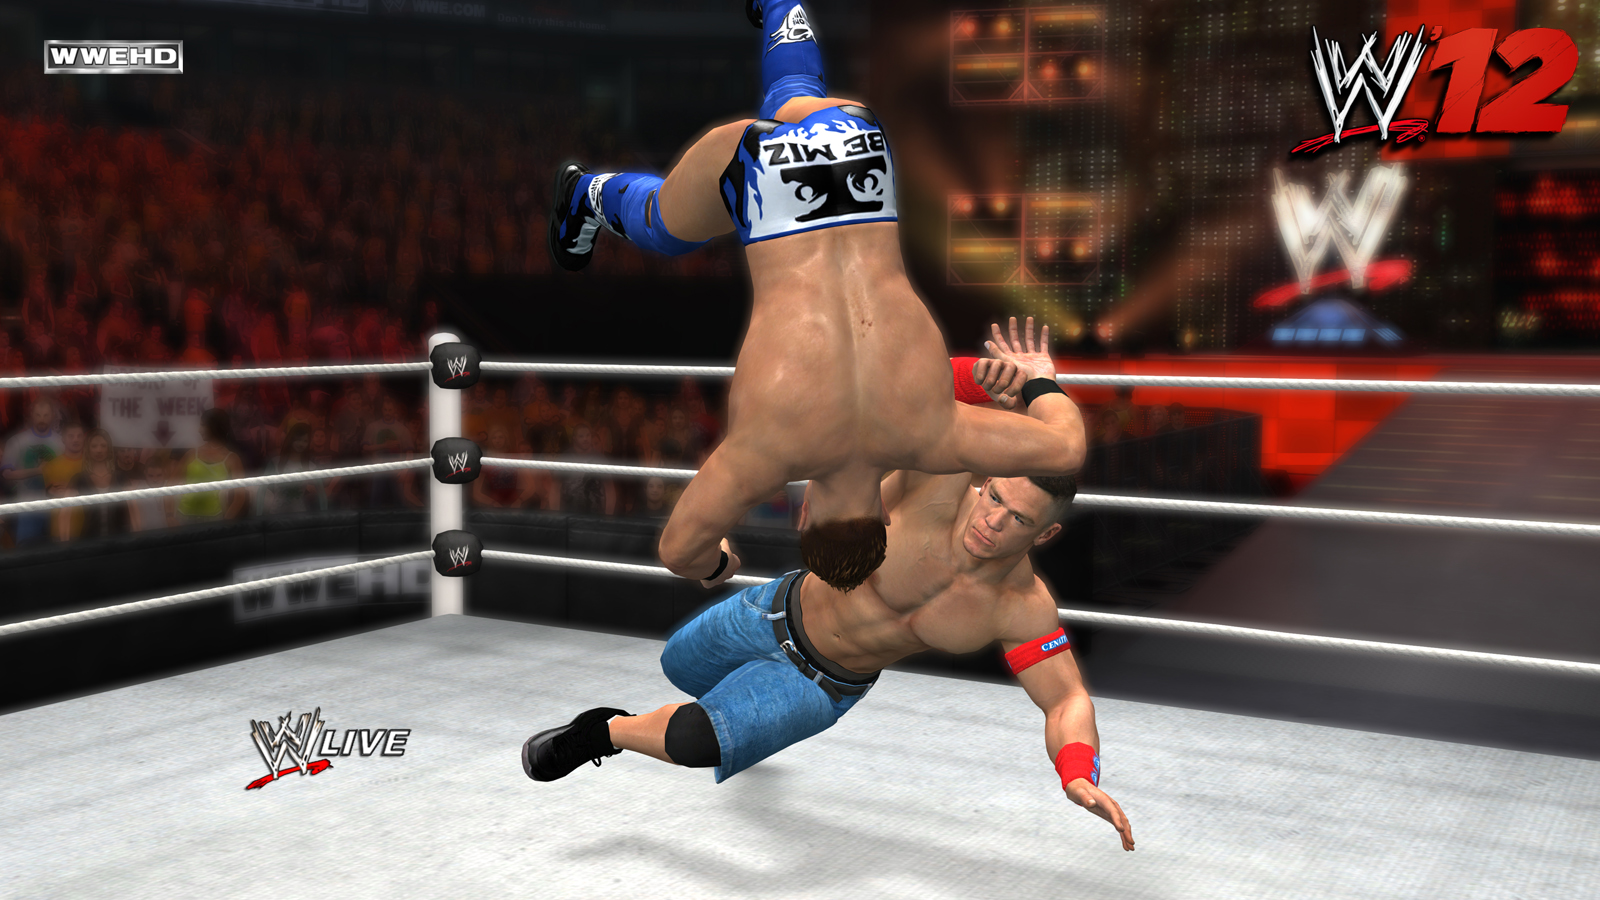 WWE 12 For PC | Free Full Pc Games at iGamesFun